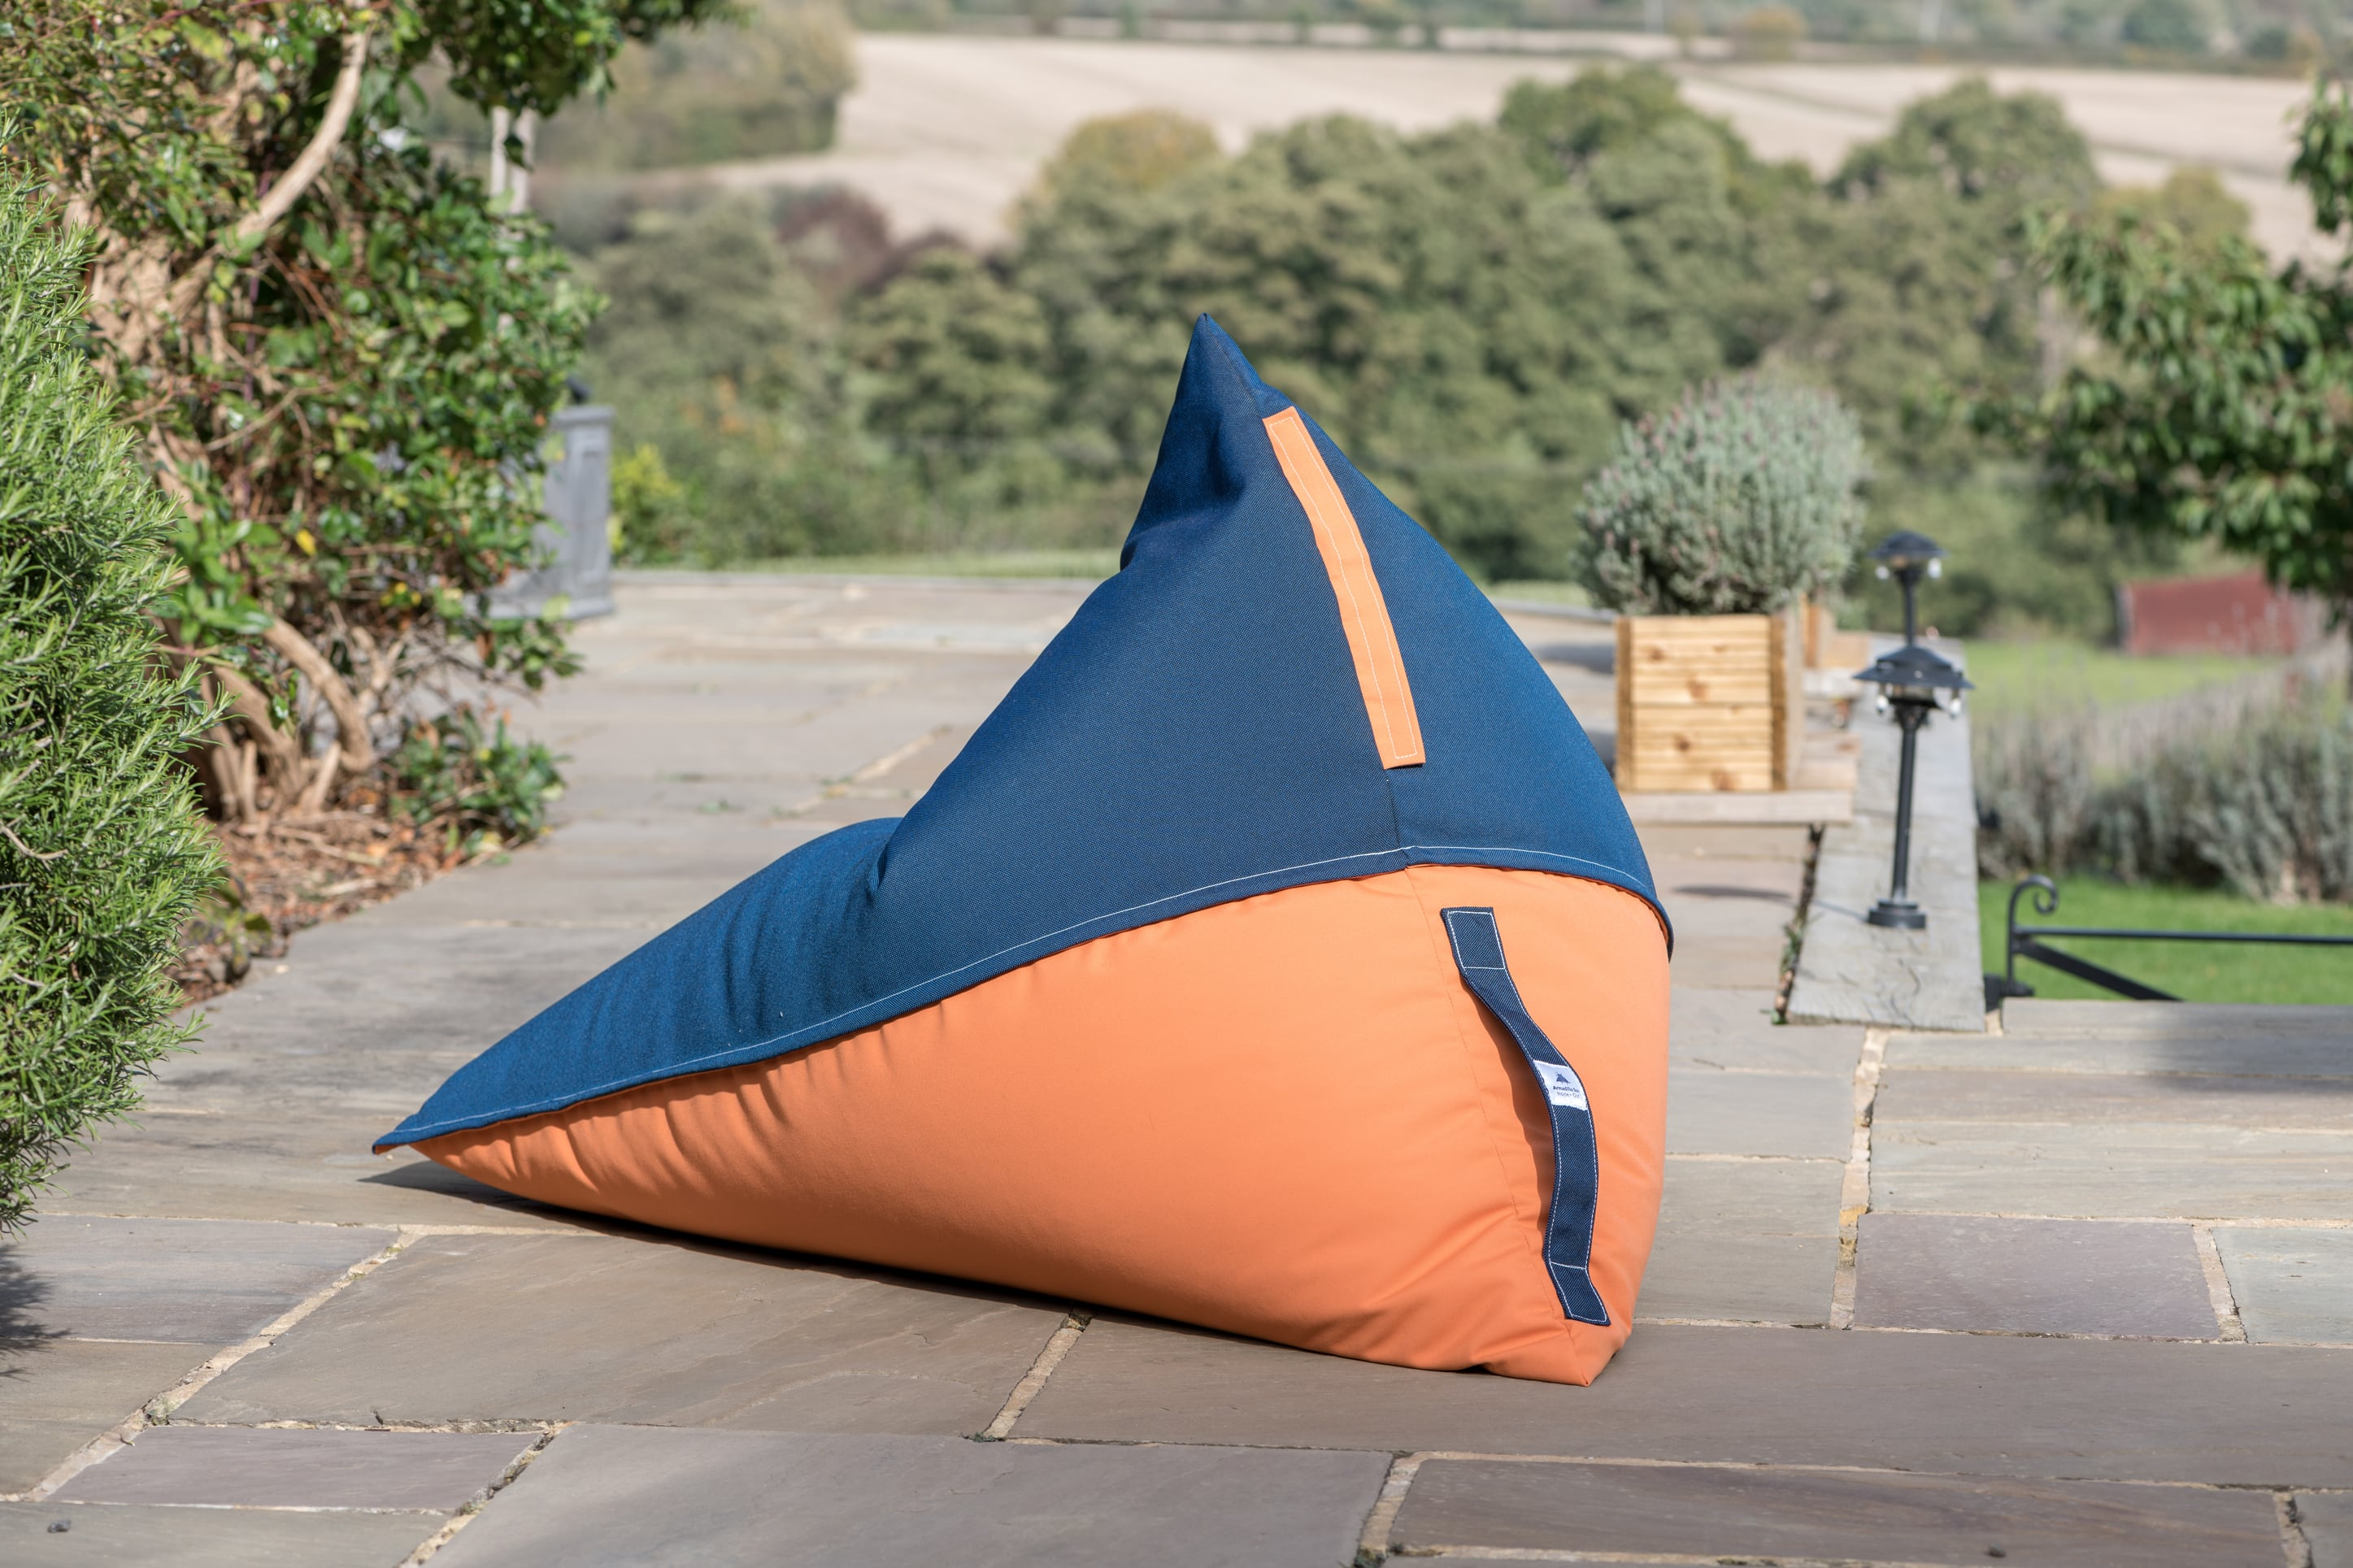 Armadillo Sun bean bag chair in orange and navy blue fabric outside